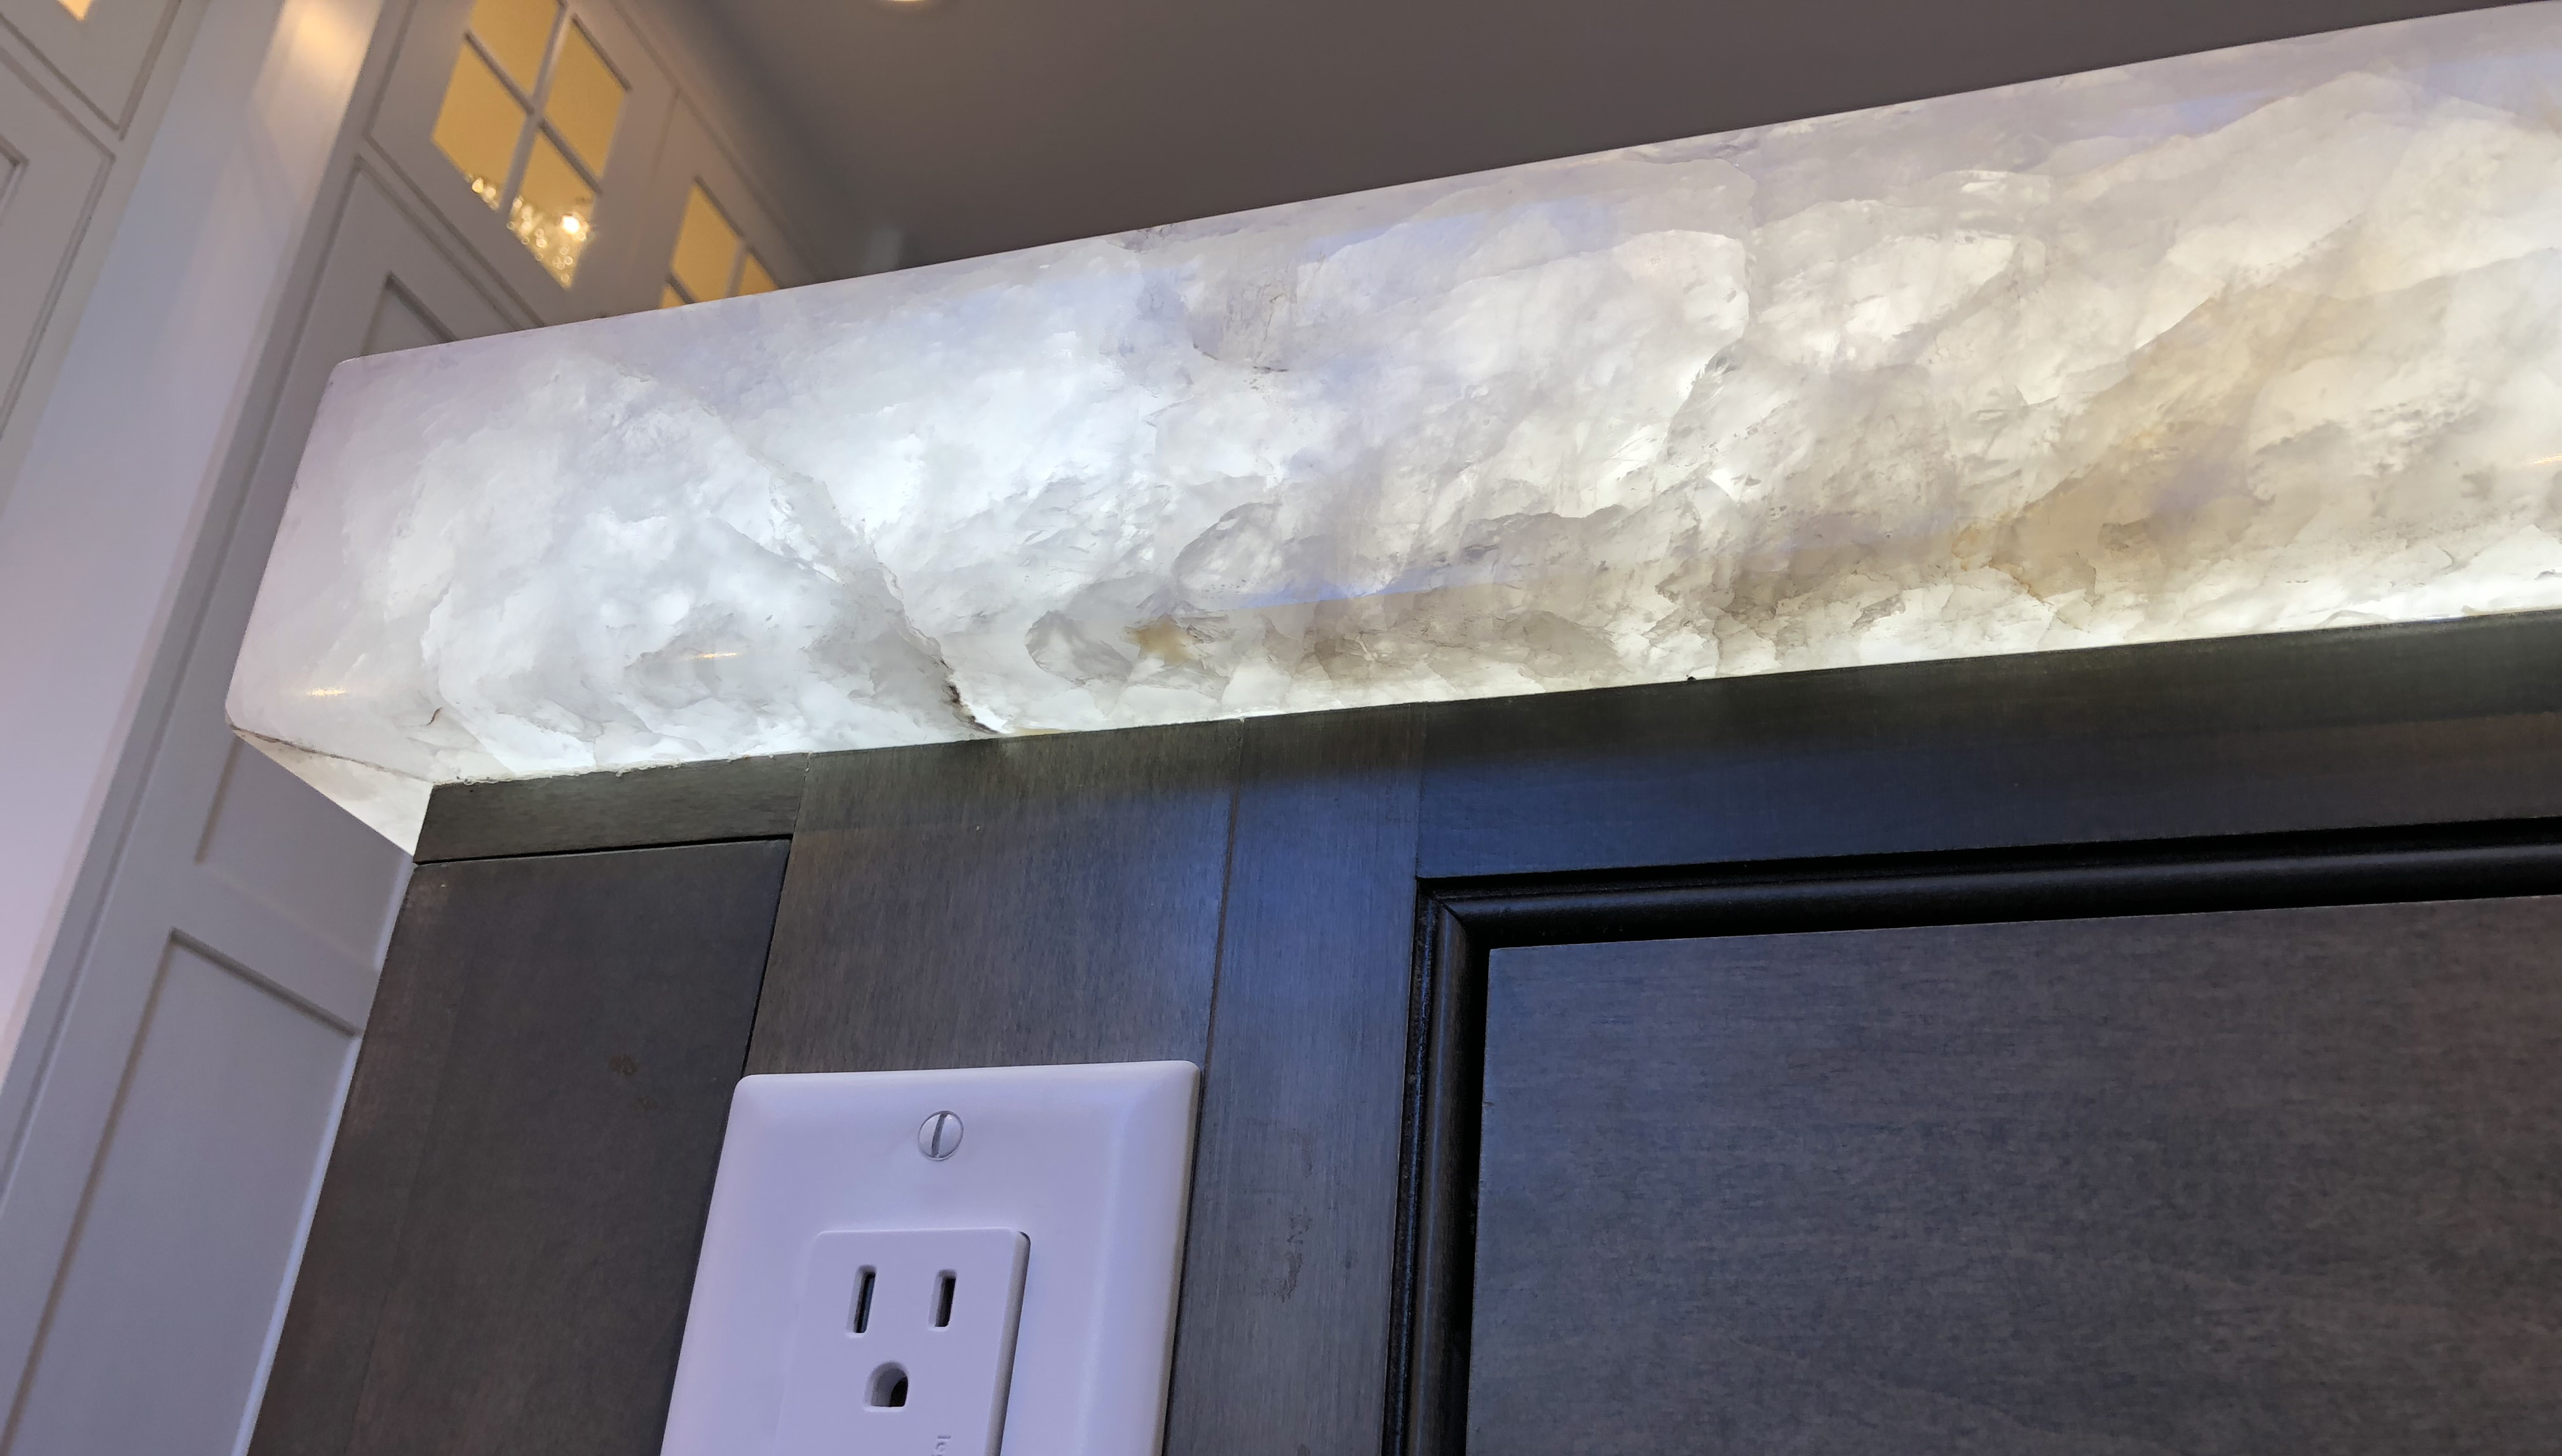 LED under countertop pannel. quartz glowing, kitchen countertop